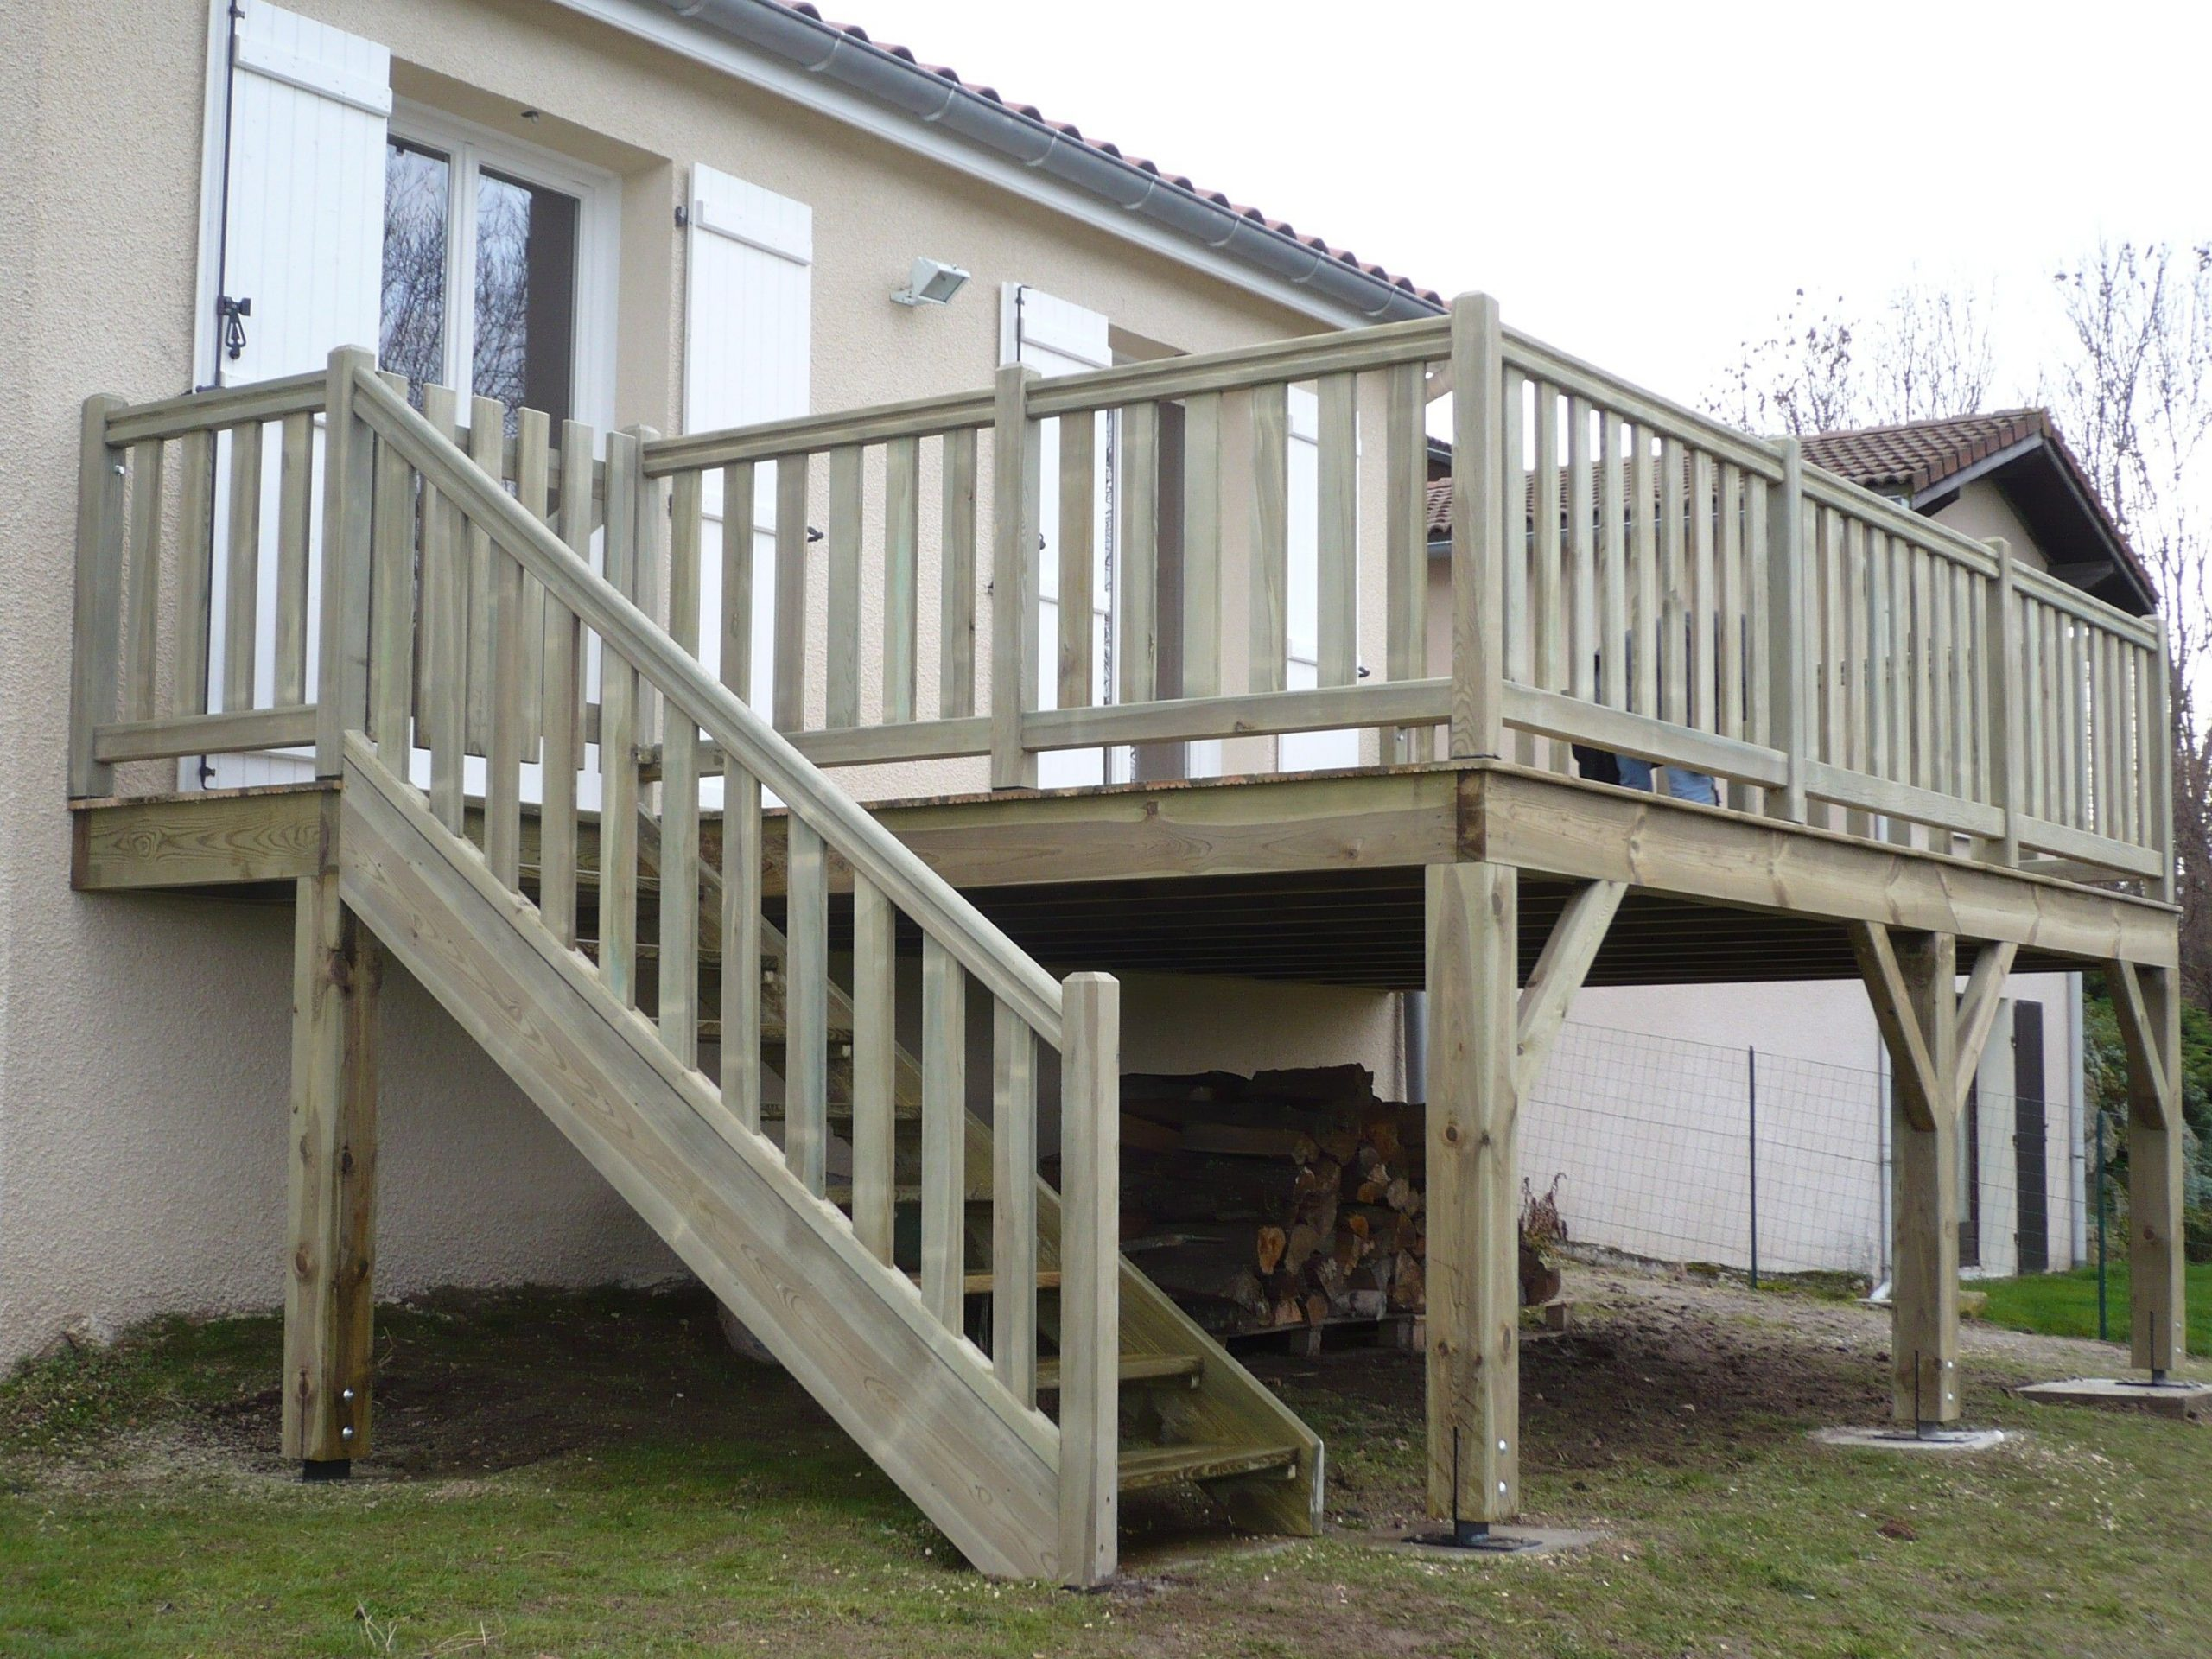 Find Inspiration About Realiser Une Terrasse Sur Pilotis ... tout Construire Une Terrasse Sur Pilotis